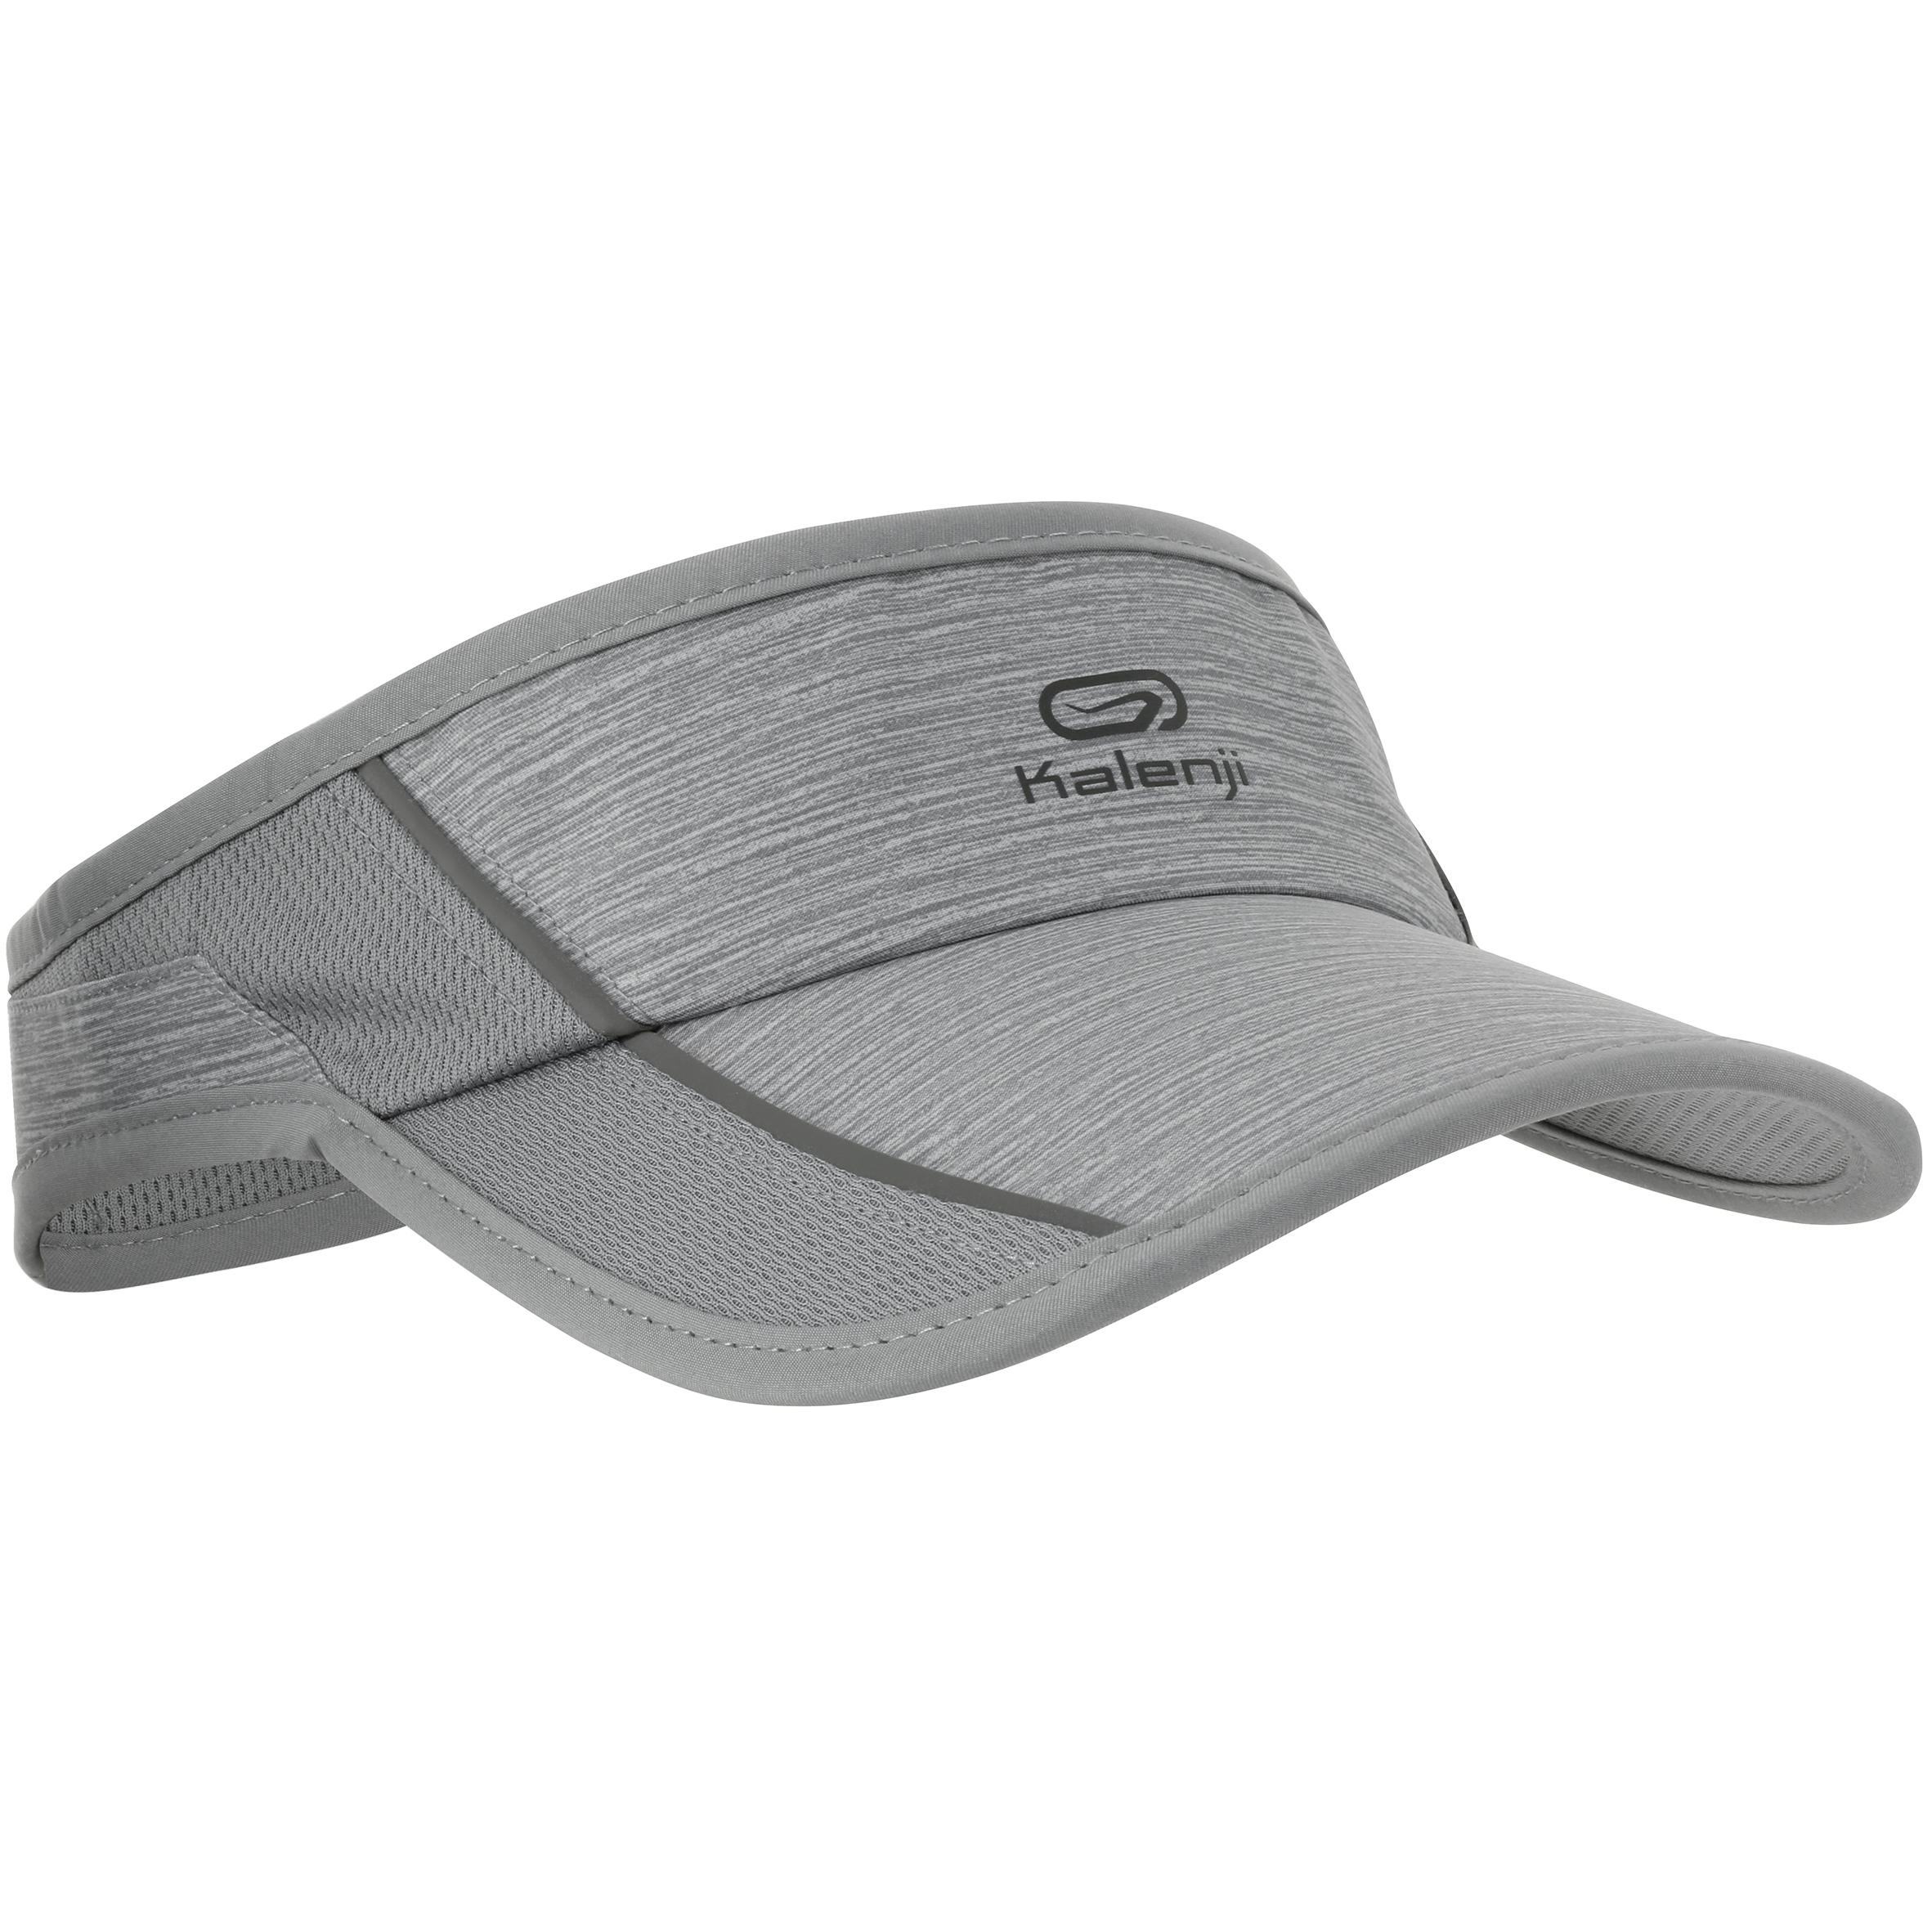 Running Visor - Grey